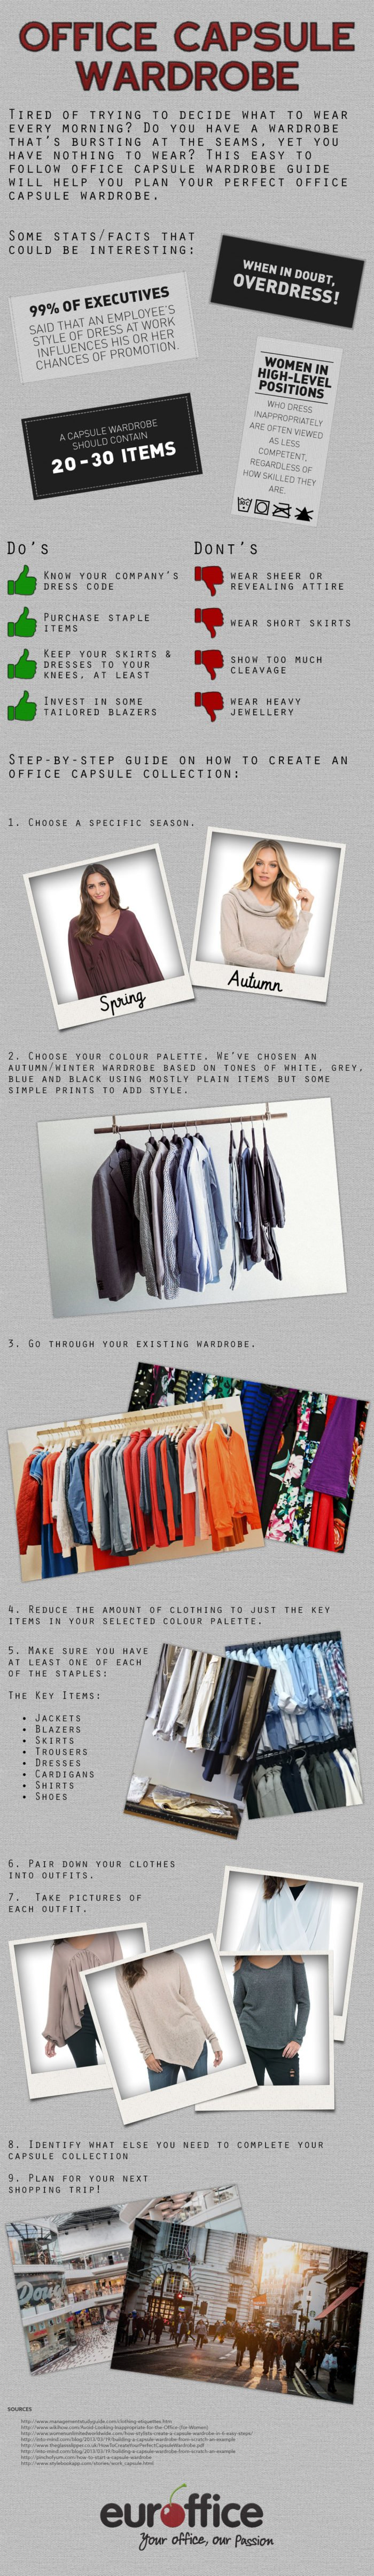 office Capsule Wardrobe